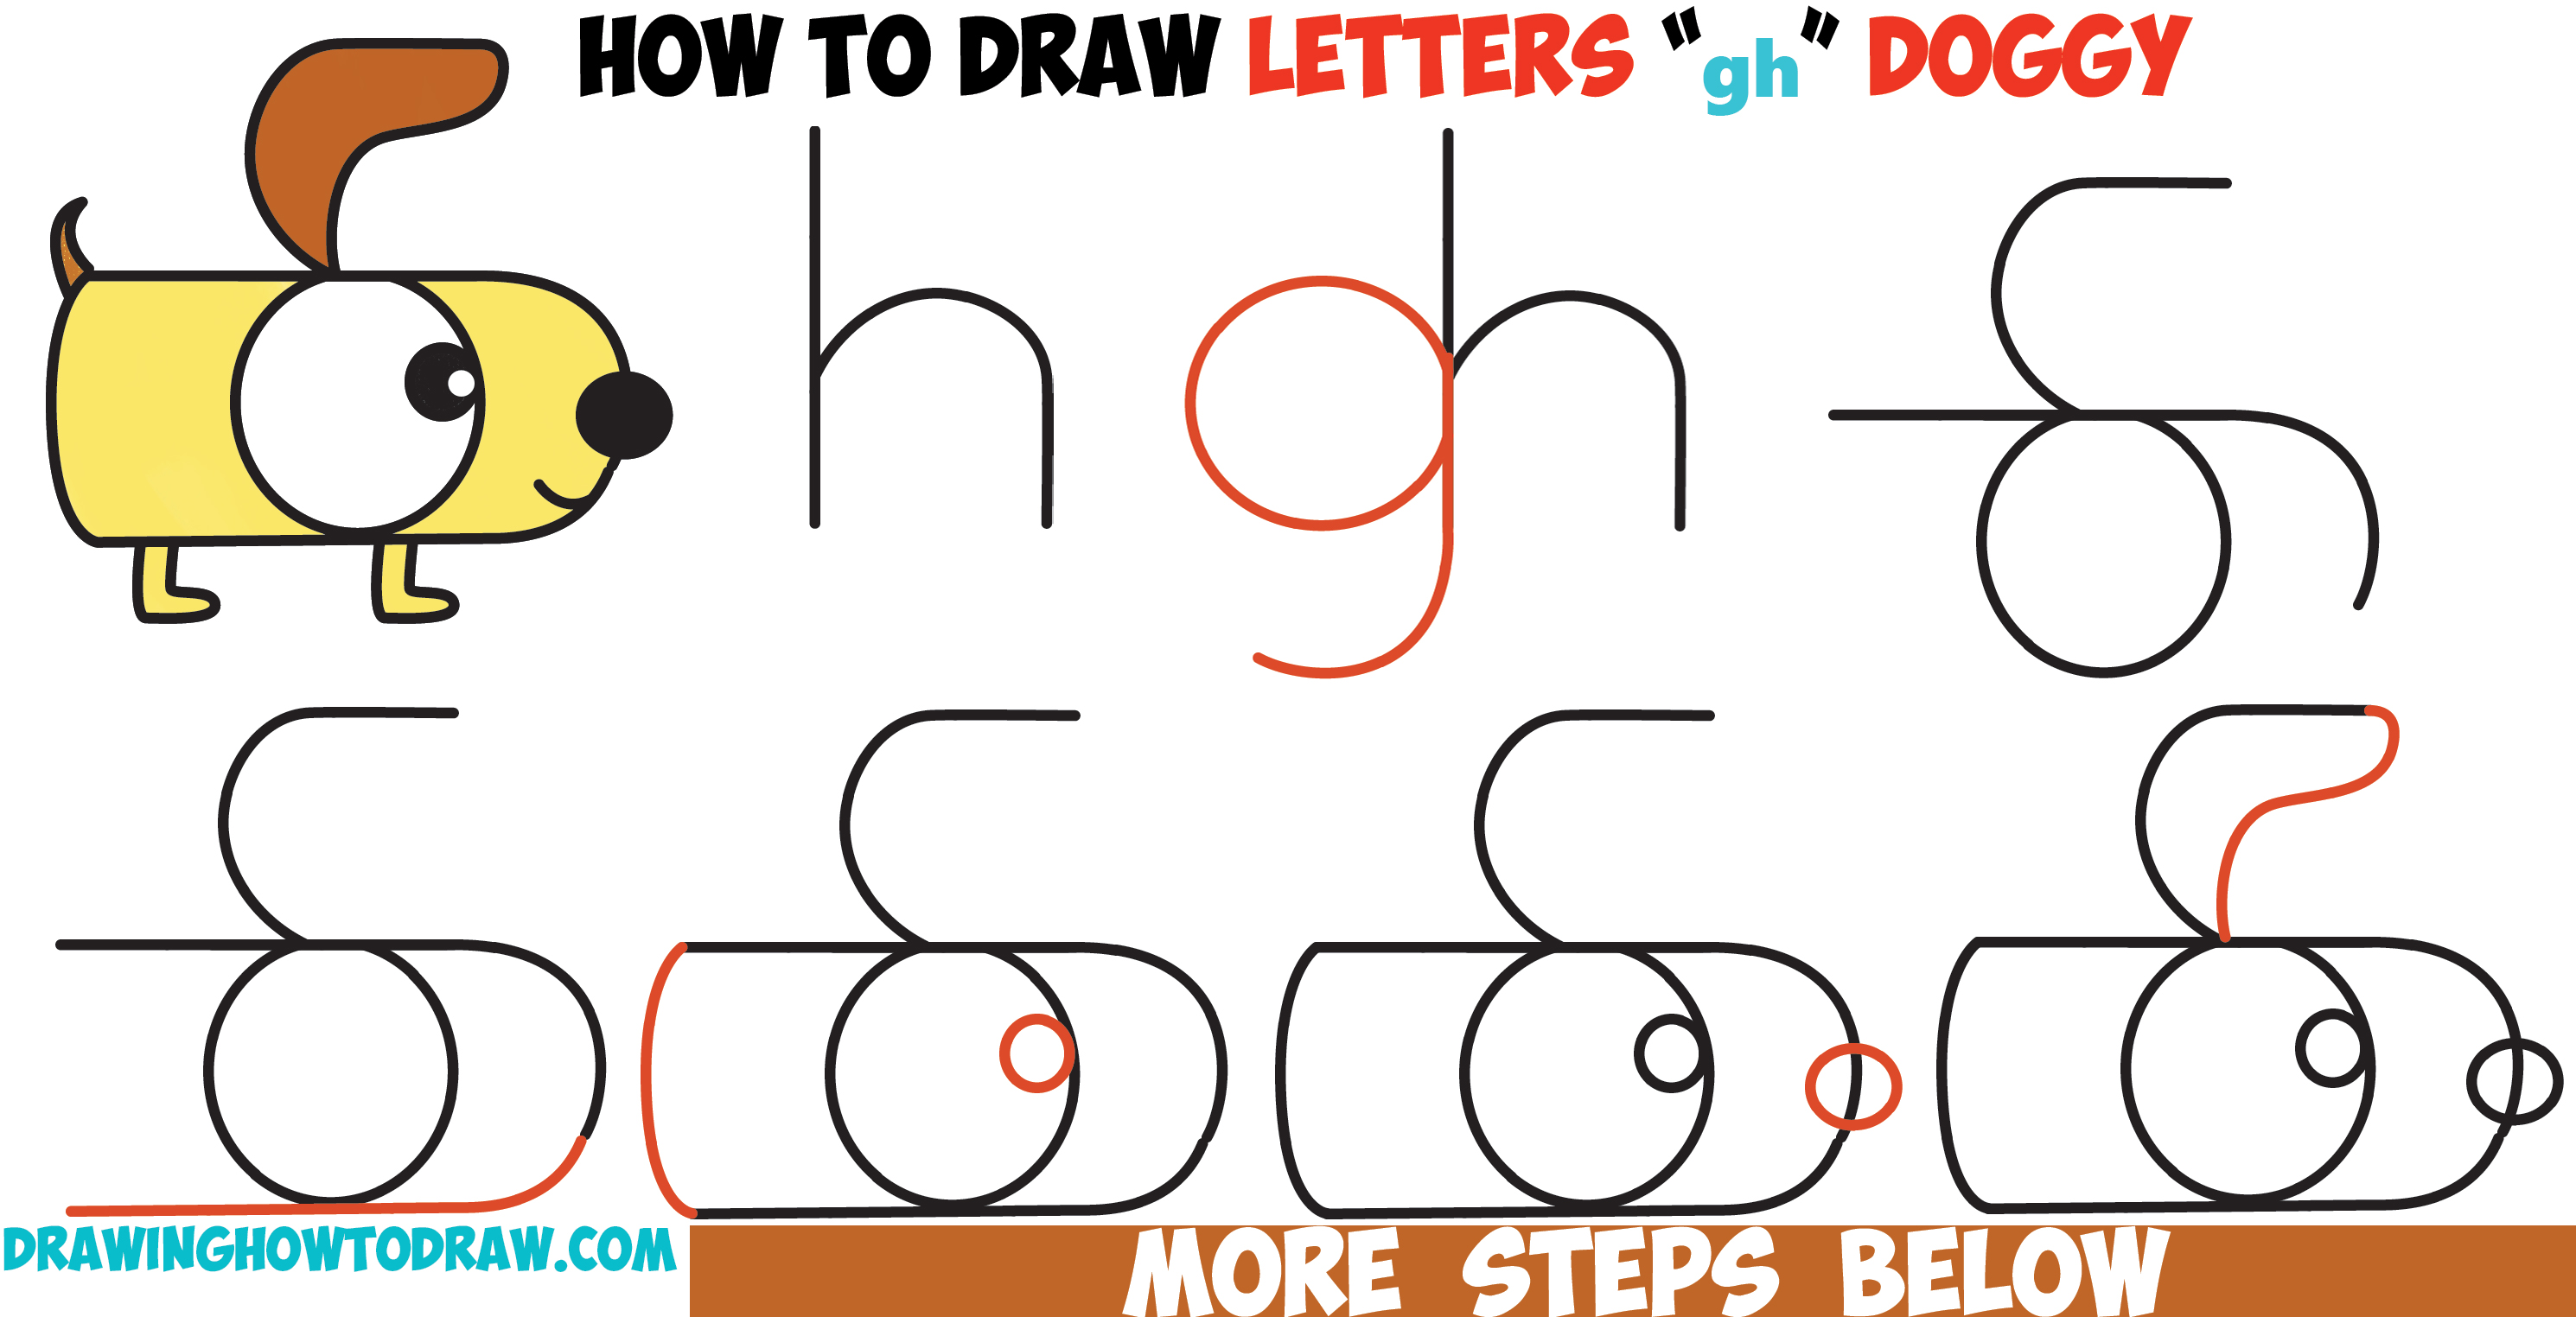 How To Draw A Cartoon Dog From Letters G And H Easy Step By Step